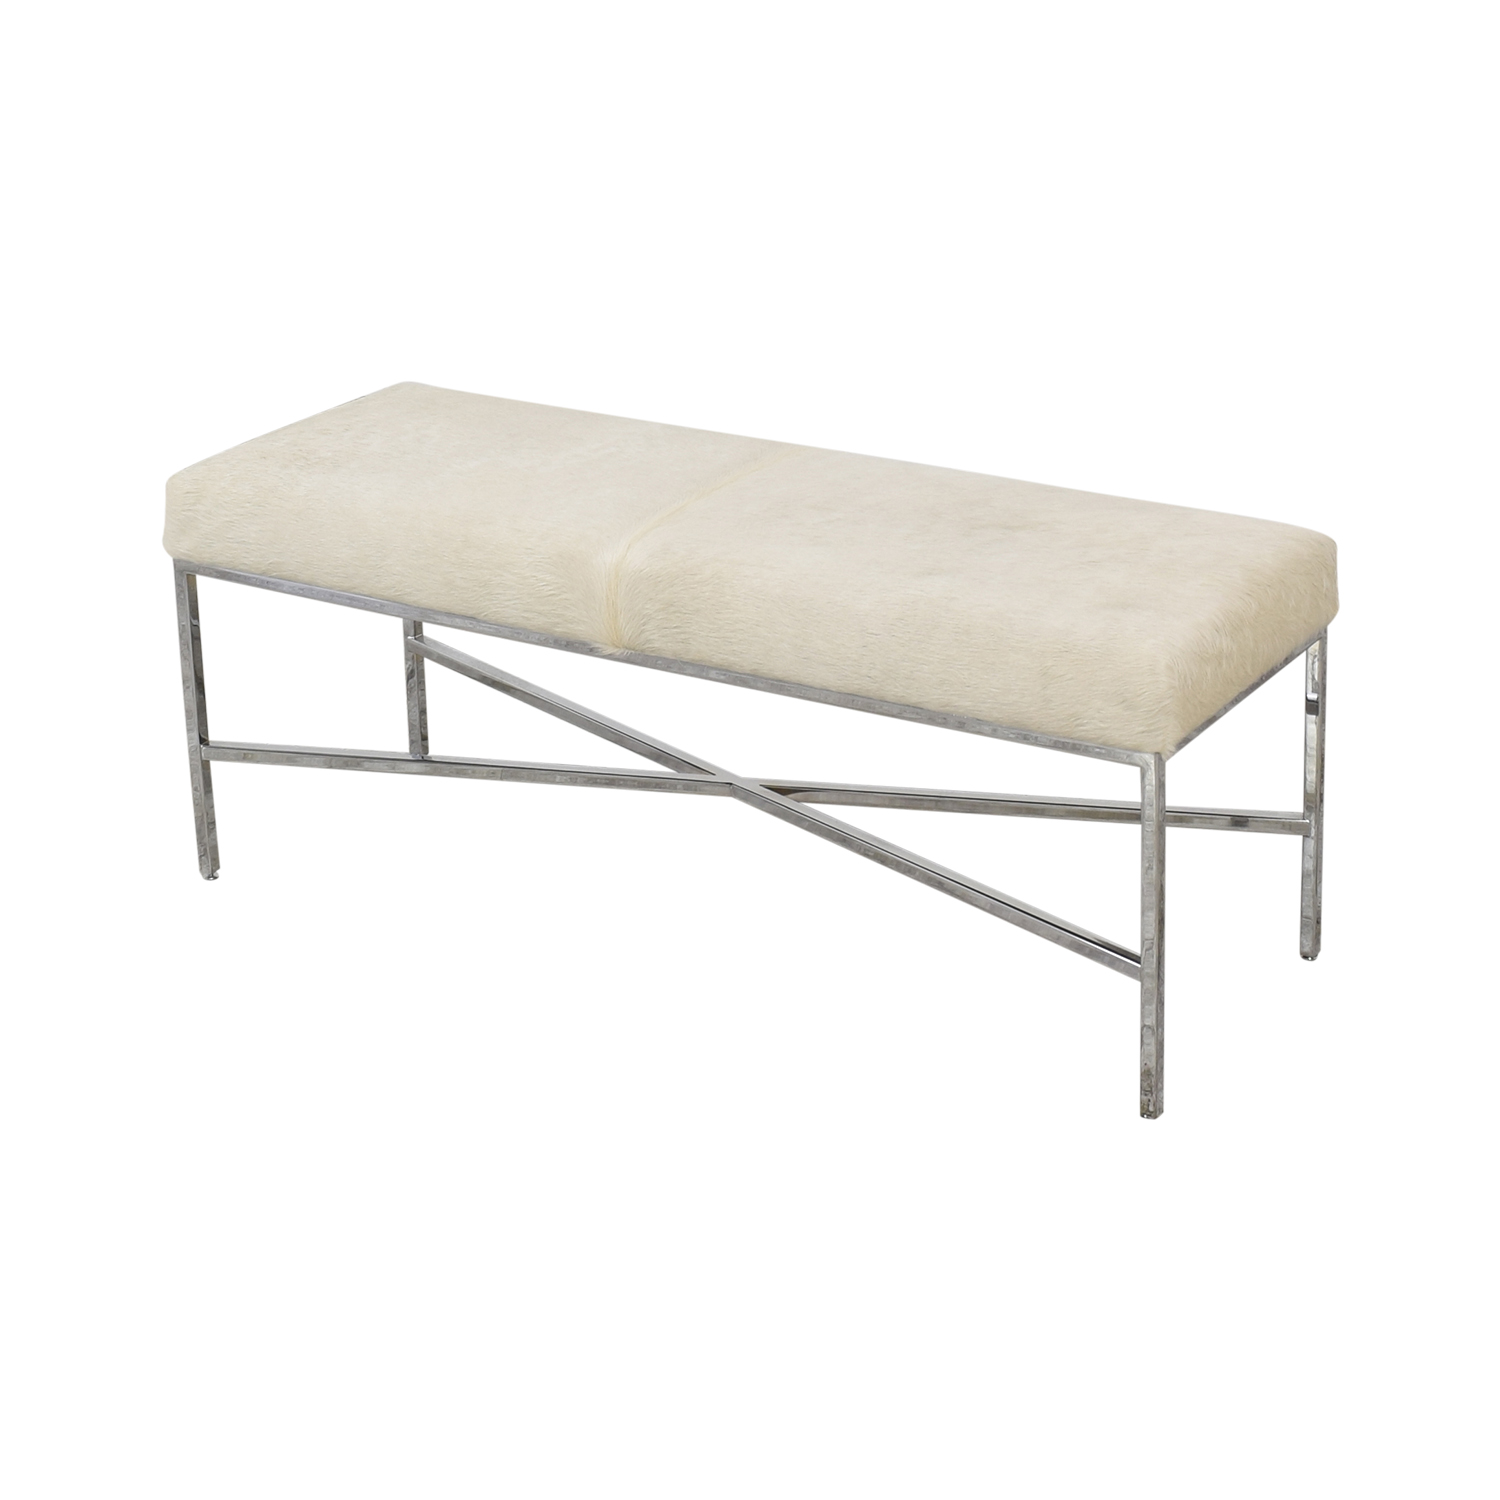 Outpost Original Outpost Original Metal Bench with Cowhide